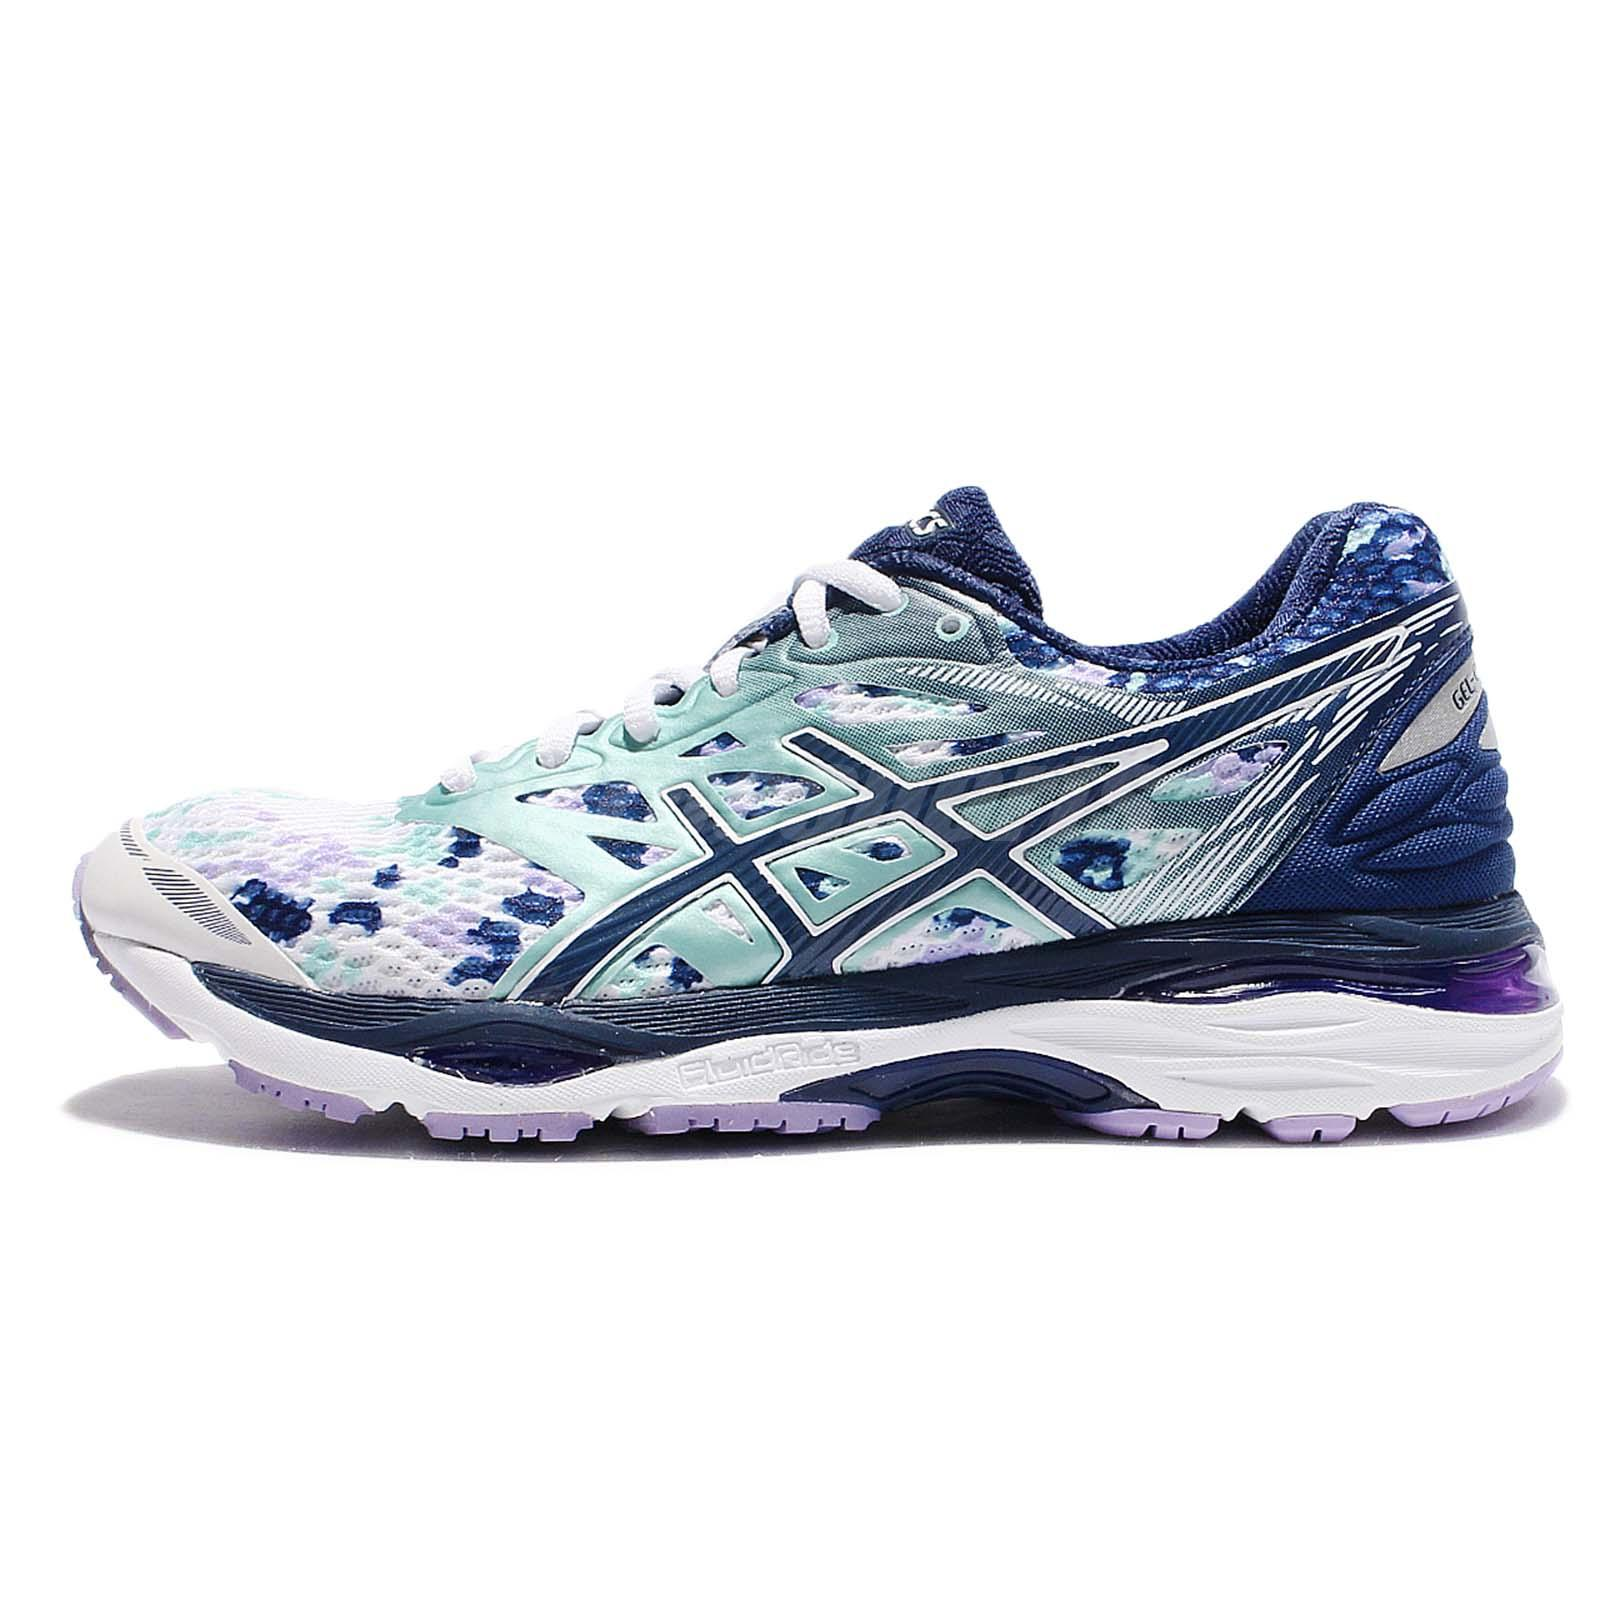 8bb89d467b Asics Gel-Cumulus 18 LE Blue White Women Running Shoes Trainers T780N-0149